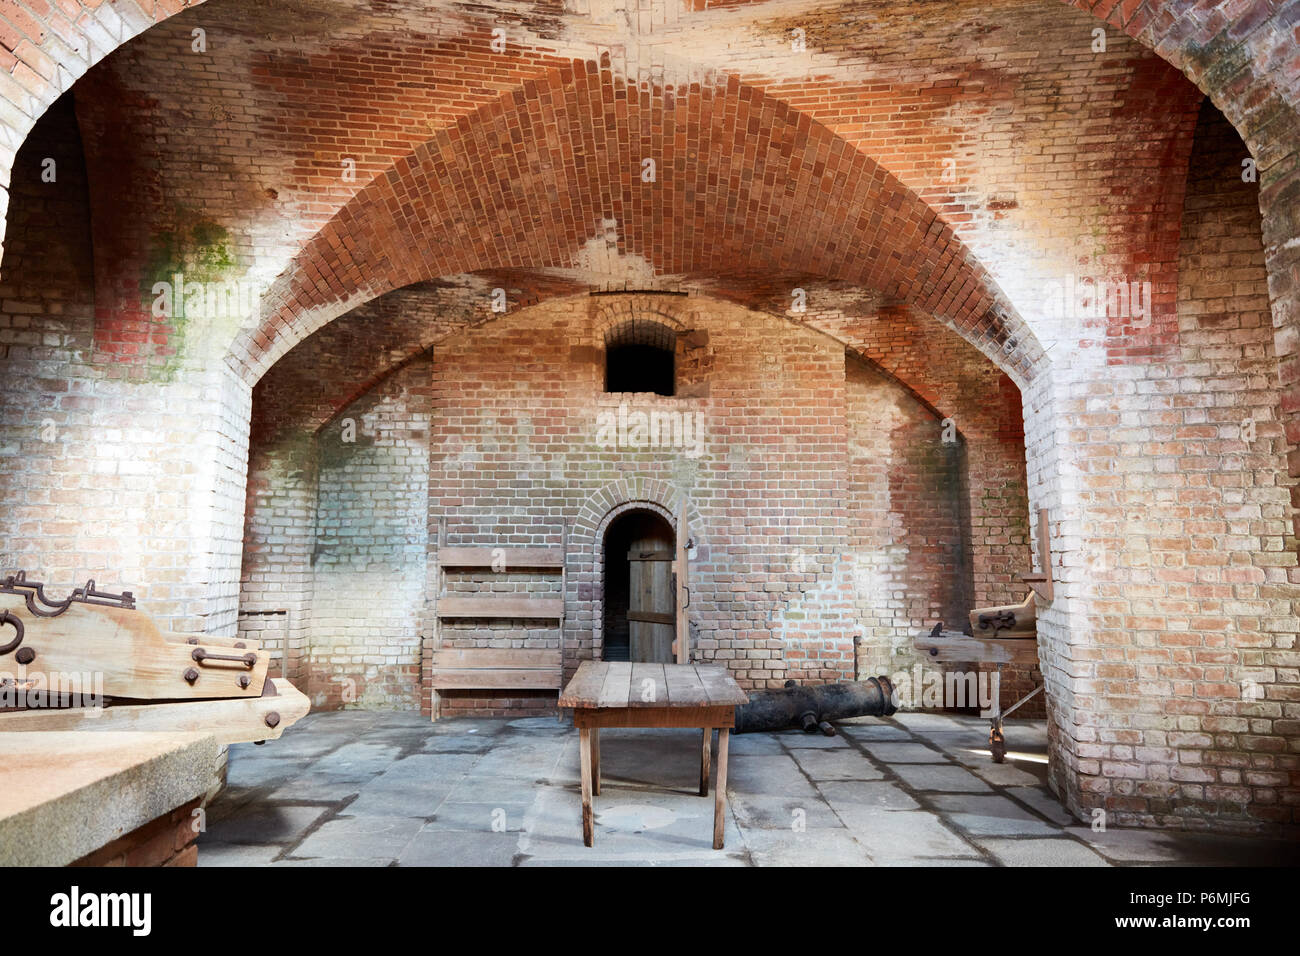 Inside a bastion at Fort Clinch - Stock Image